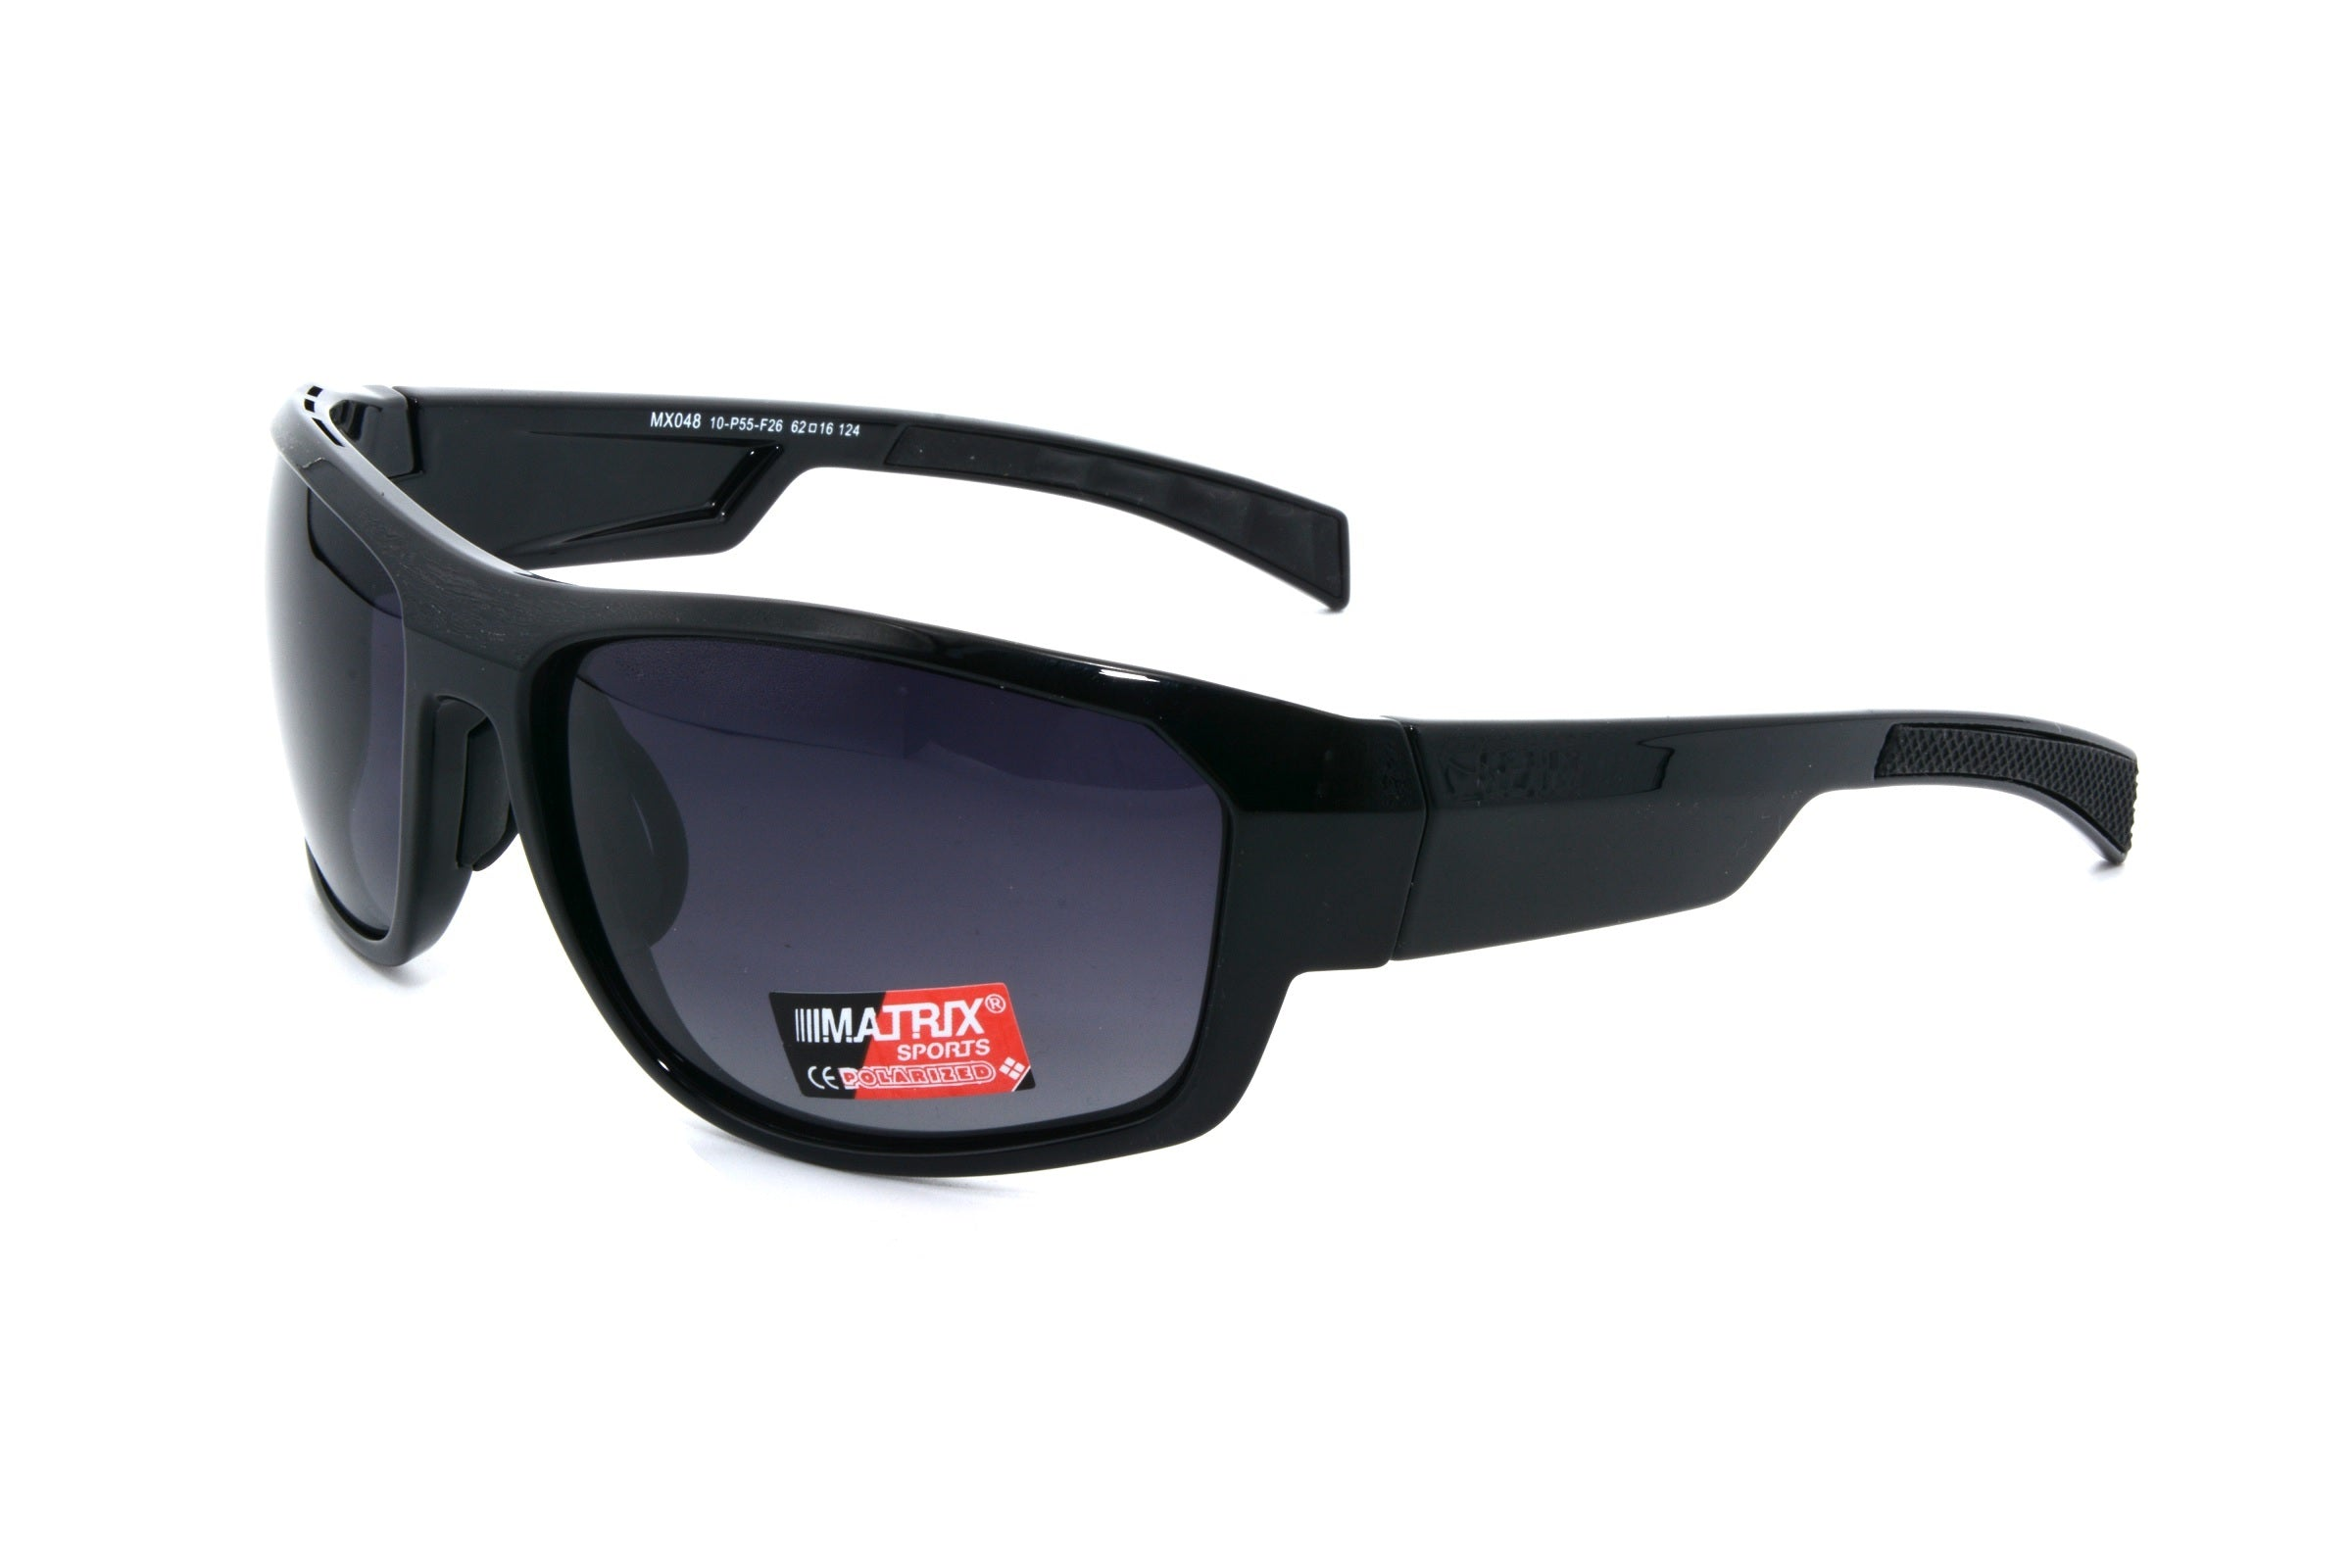 Sunglasses, Matrix MX 048, 10-P55-F26